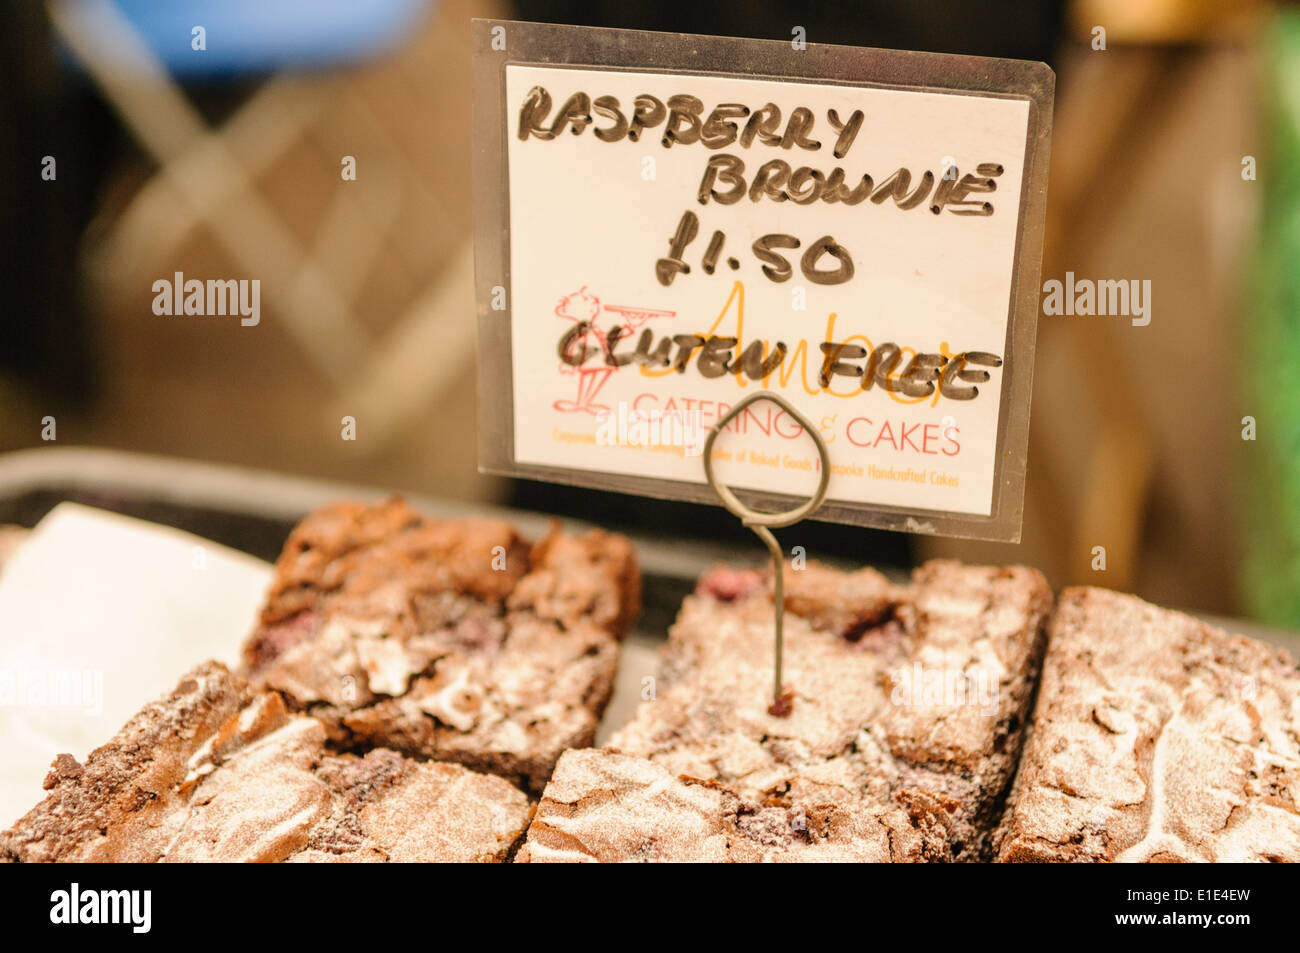 Gluten Free raspberry brownies on sale at a market stall - Stock Image